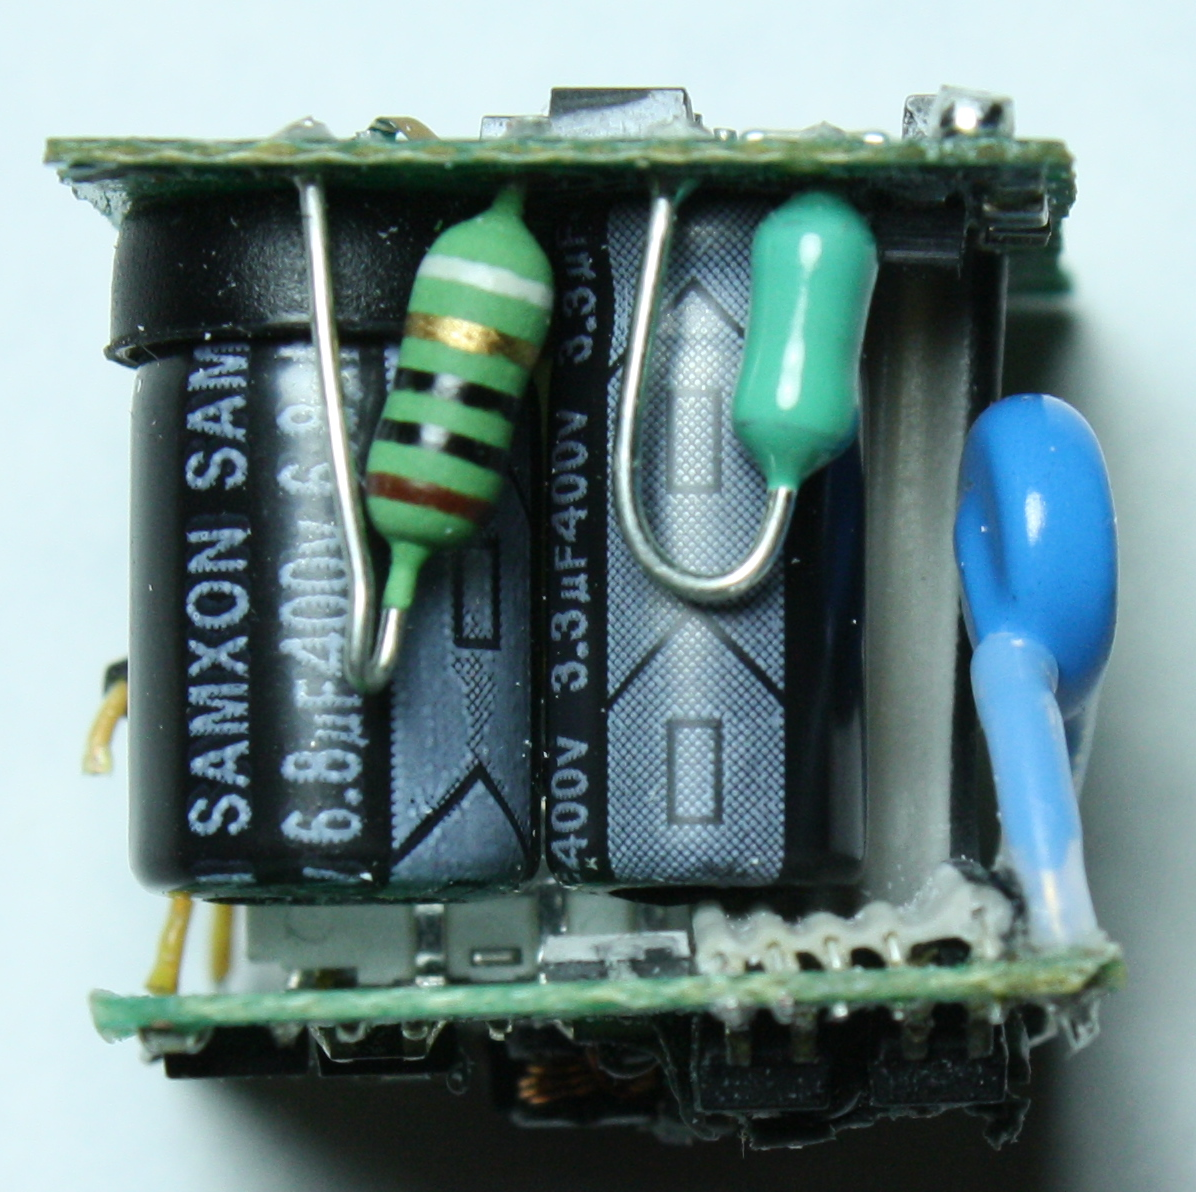 Apple Iphone Charger Teardown Quality In A Tiny Expensive Package Creative And Cool Ways To Reuse Old Circuit Boards 15 4 Showing The Fusible Resistor Striped Inductor Green